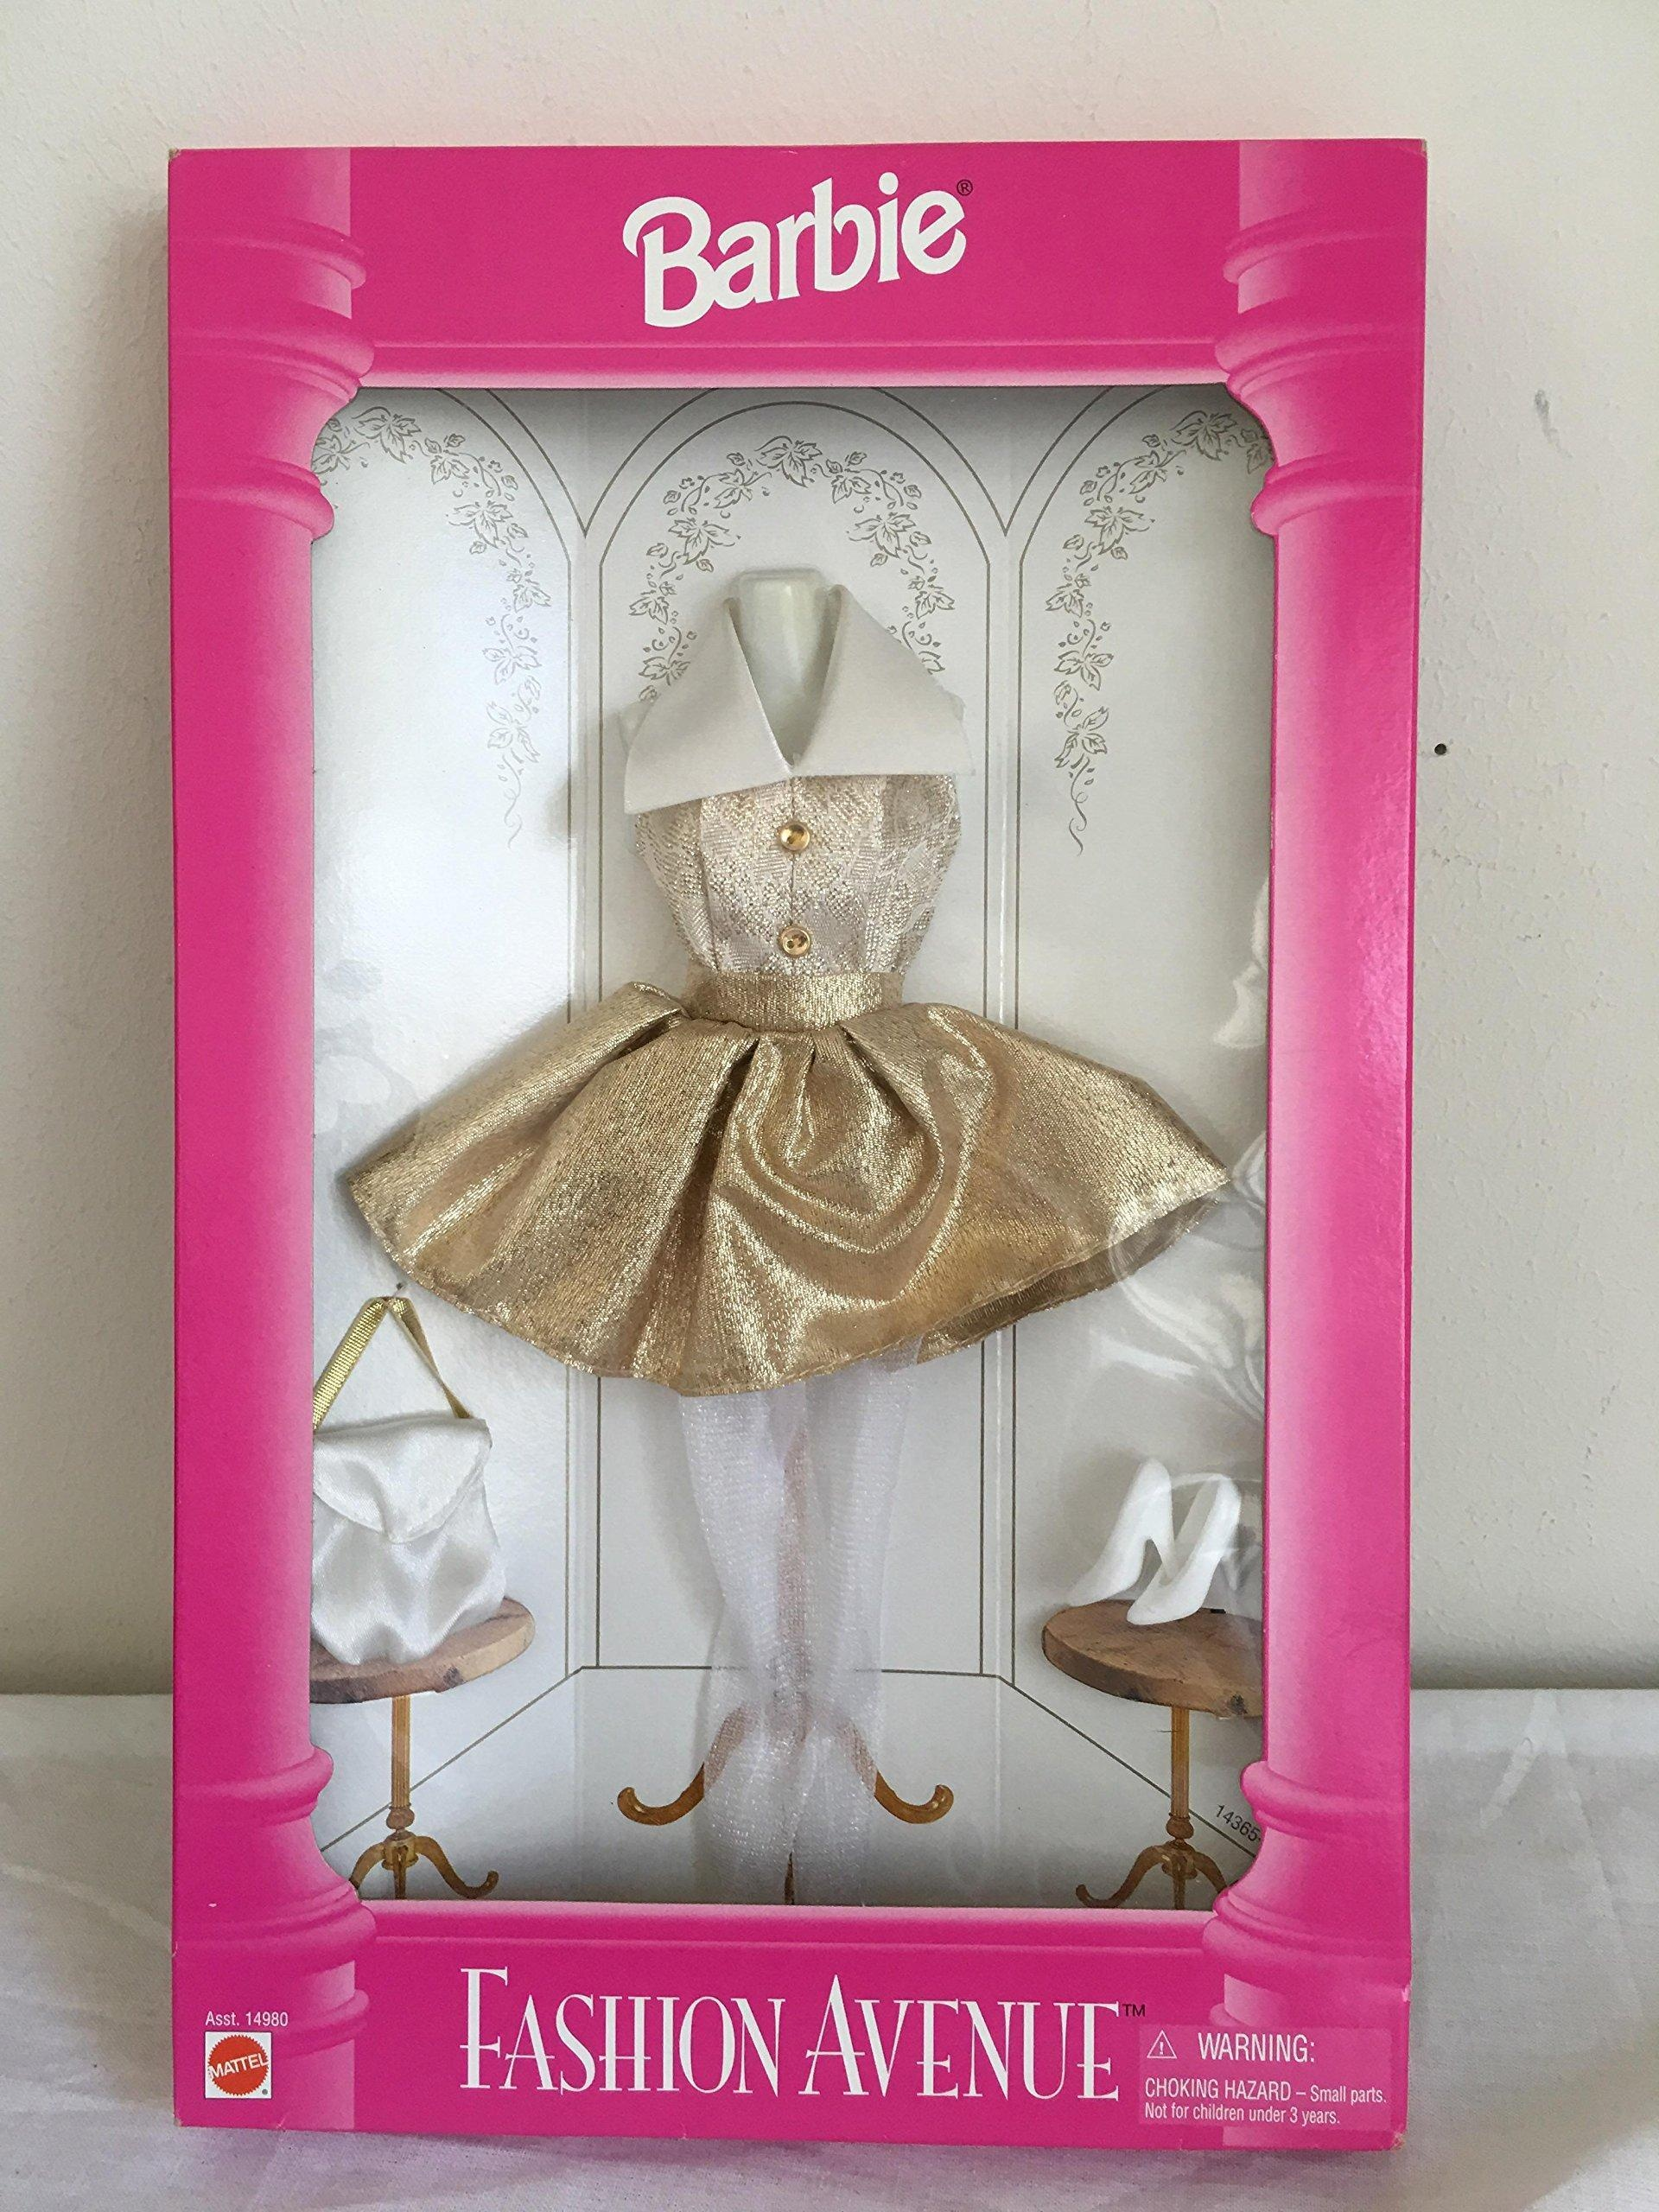 Gold Barbie Fashion outfit dress white purse shoes stockings